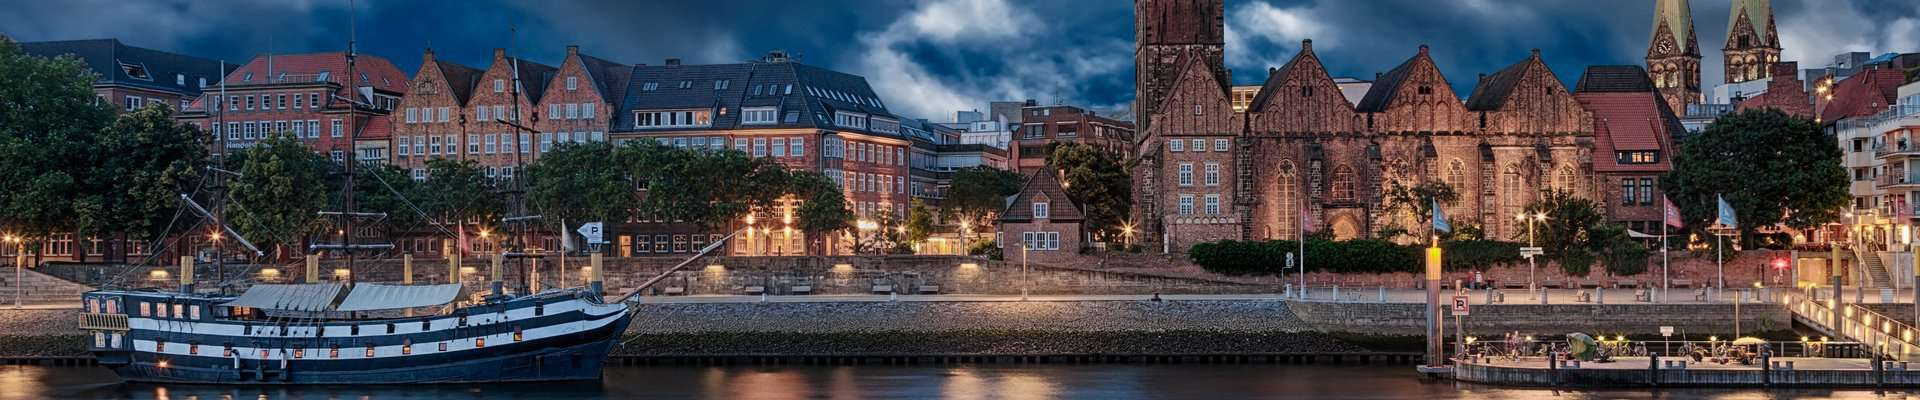 The Schlachte at night in the old town of Bremen.